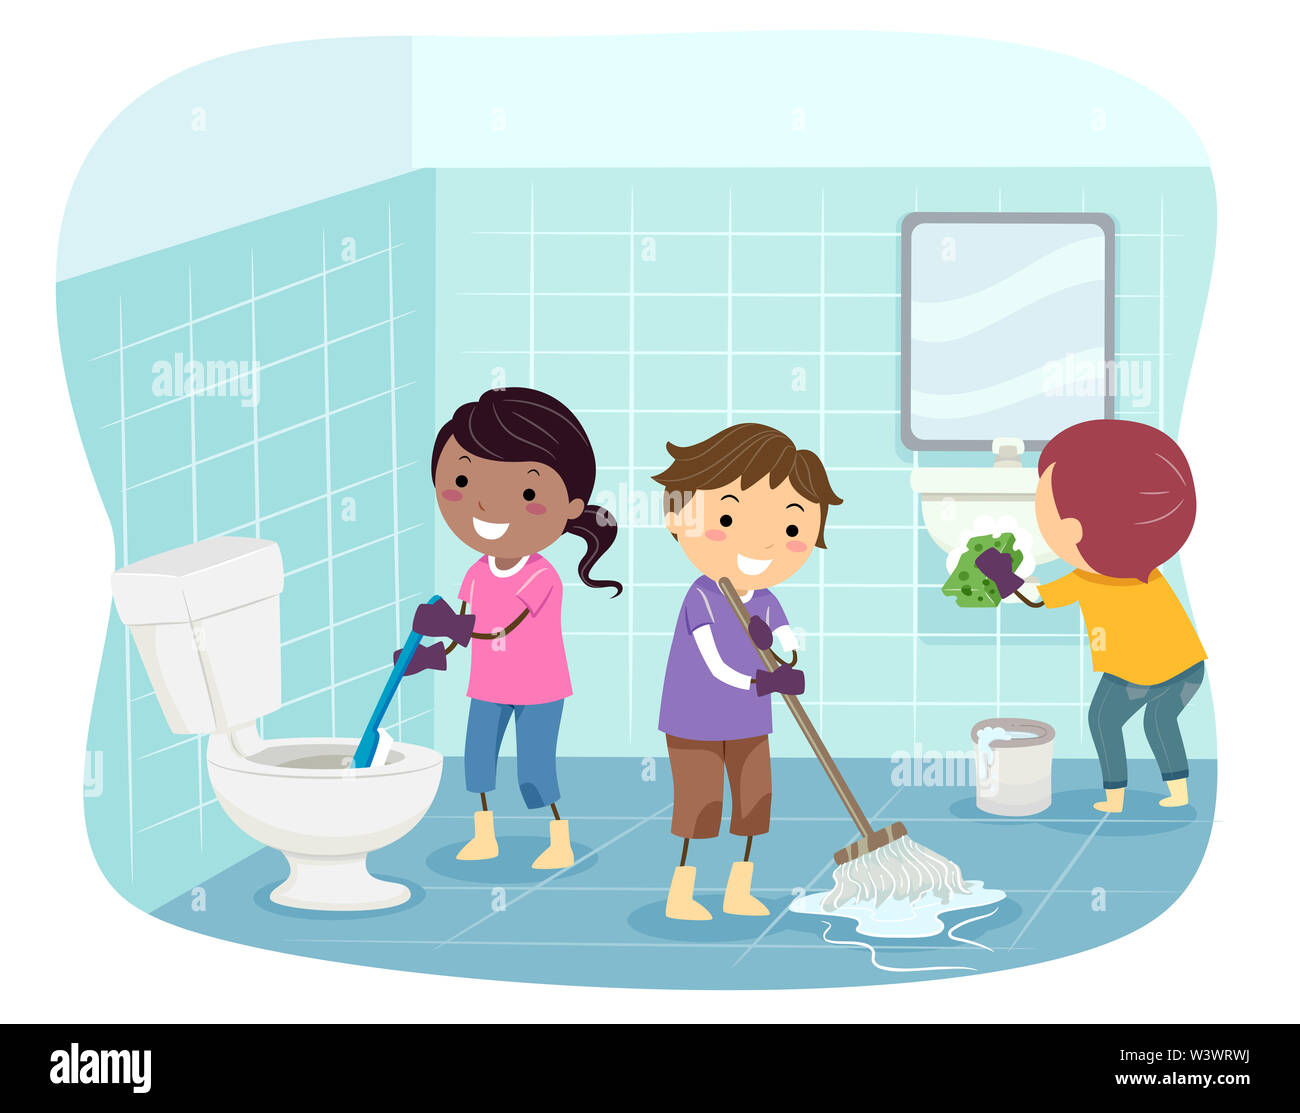 Illustration of Stickman Kids Cleaning the Bathroom from Toilet Bowl, Floor and Sink - Stock Image